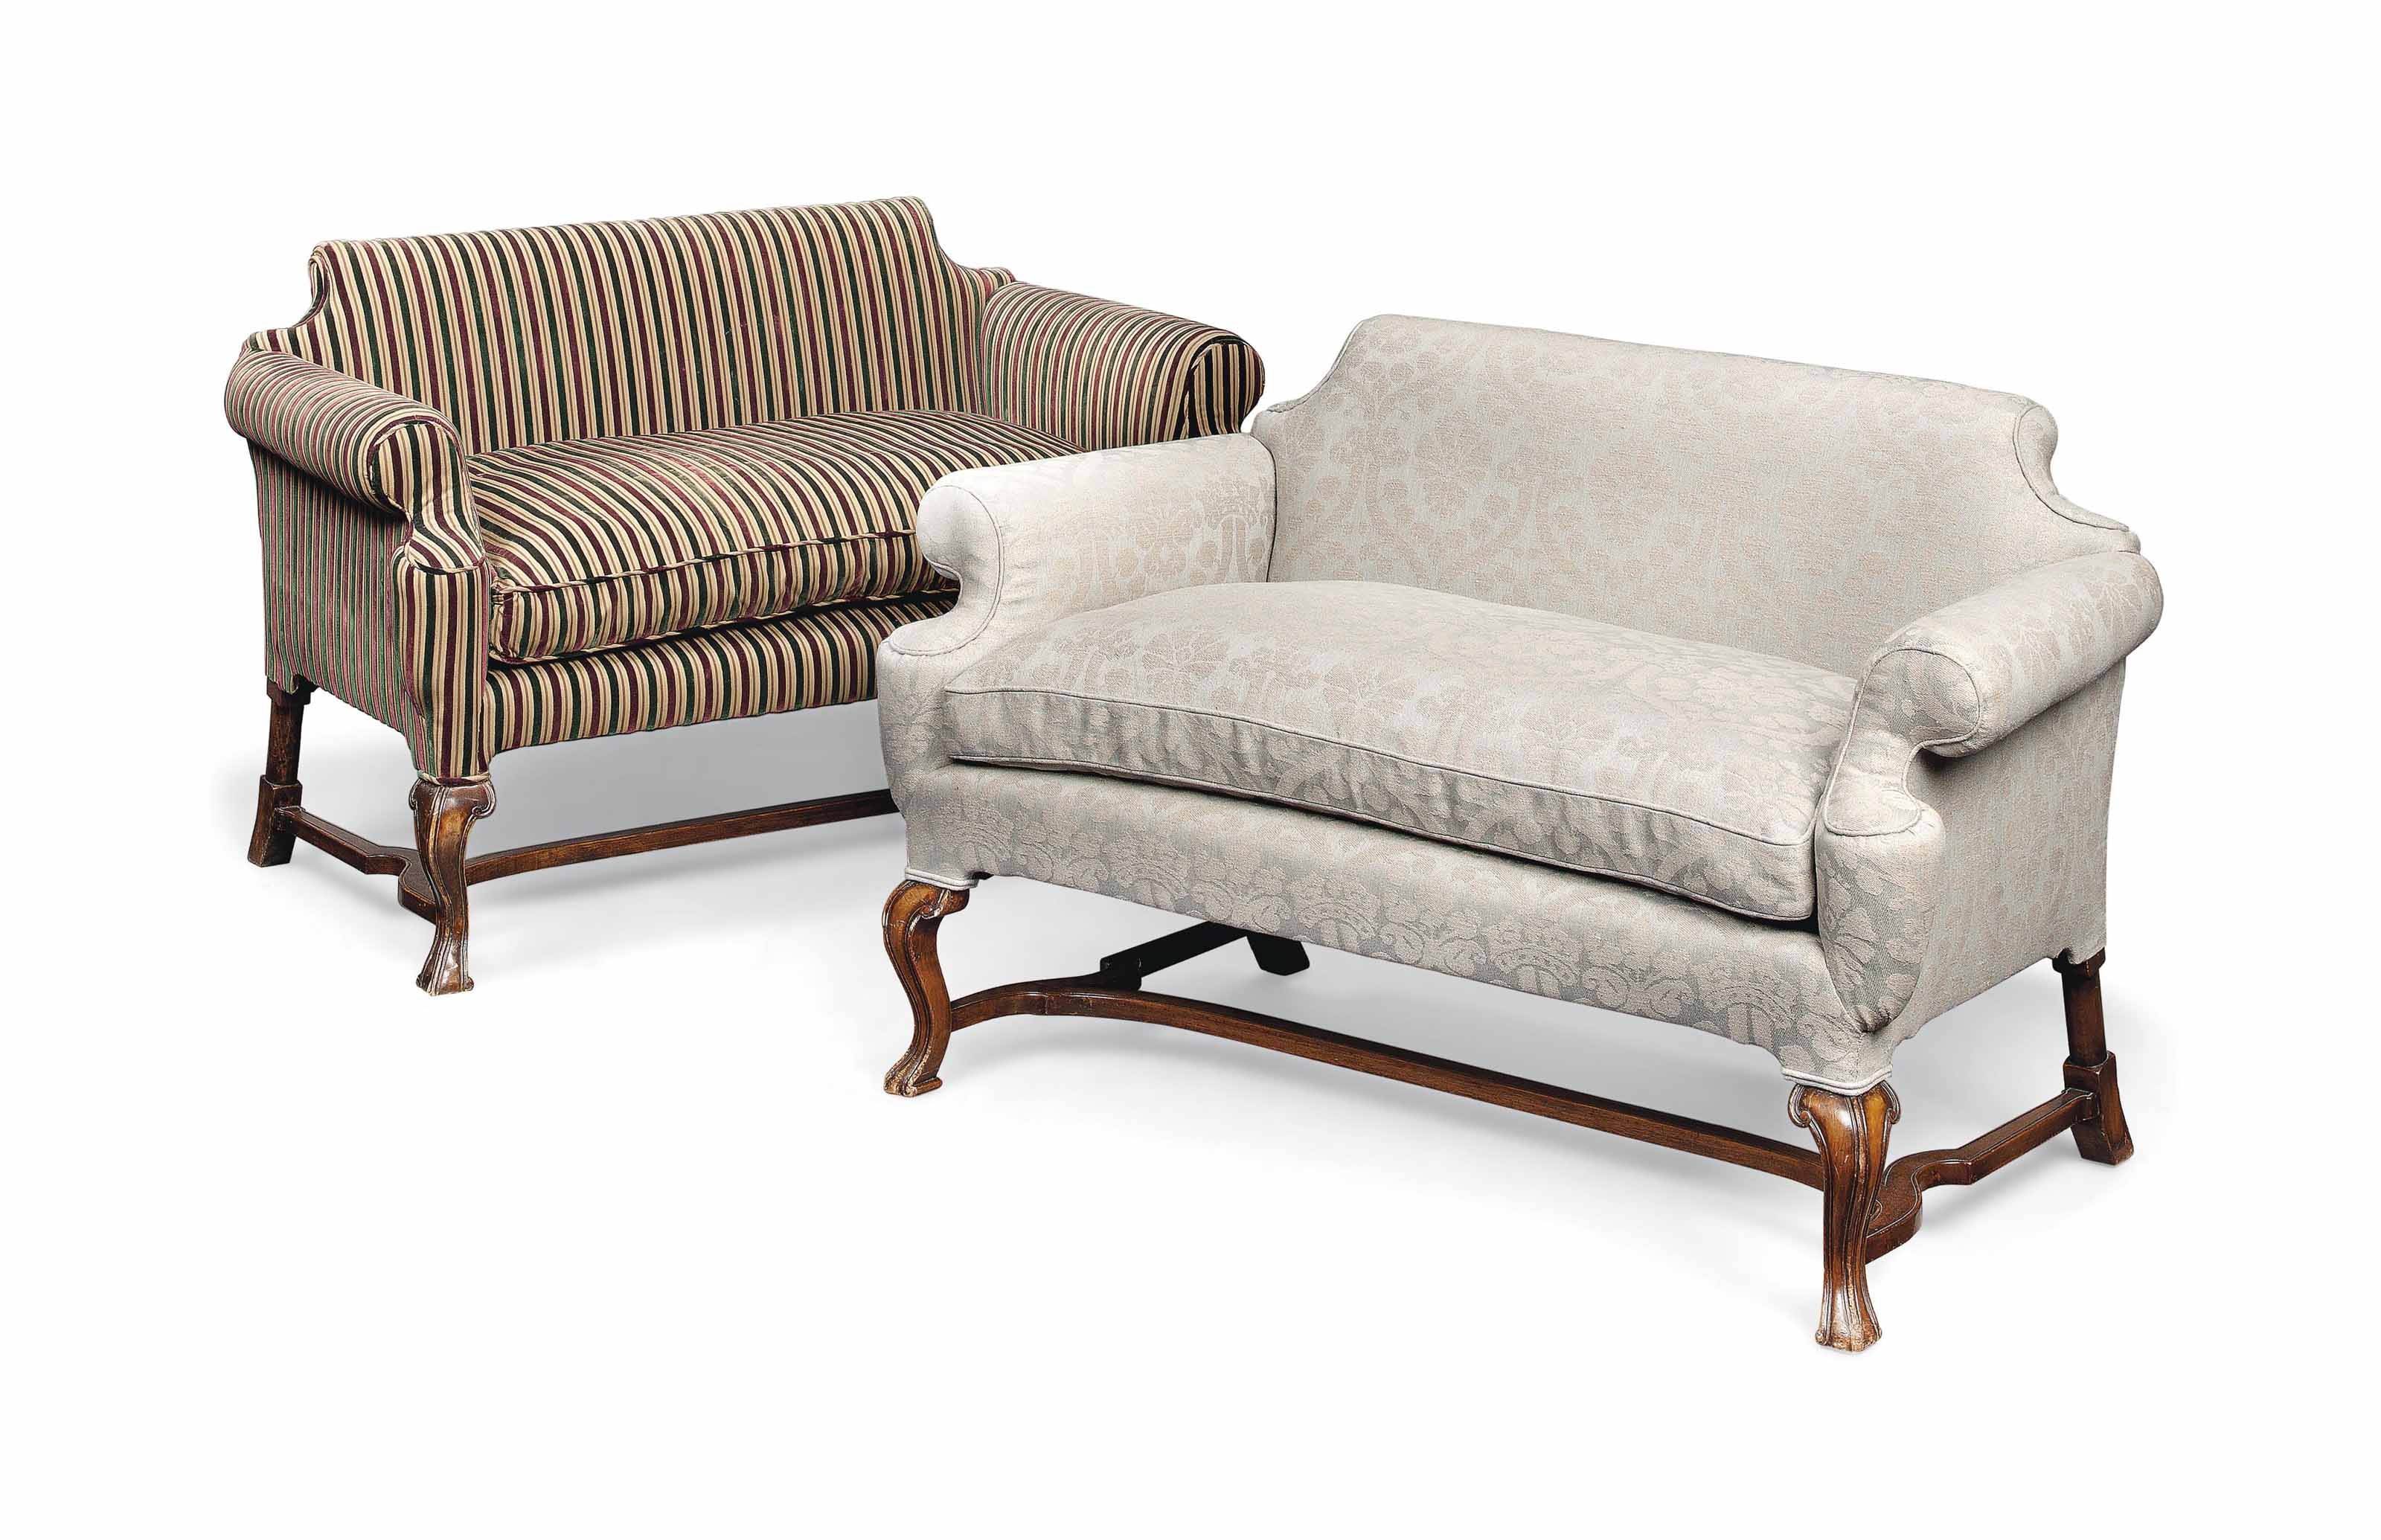 Sofa Queen Anne A Pair Of Queen Anne Style Small Sofas One Circa 1900 One Later